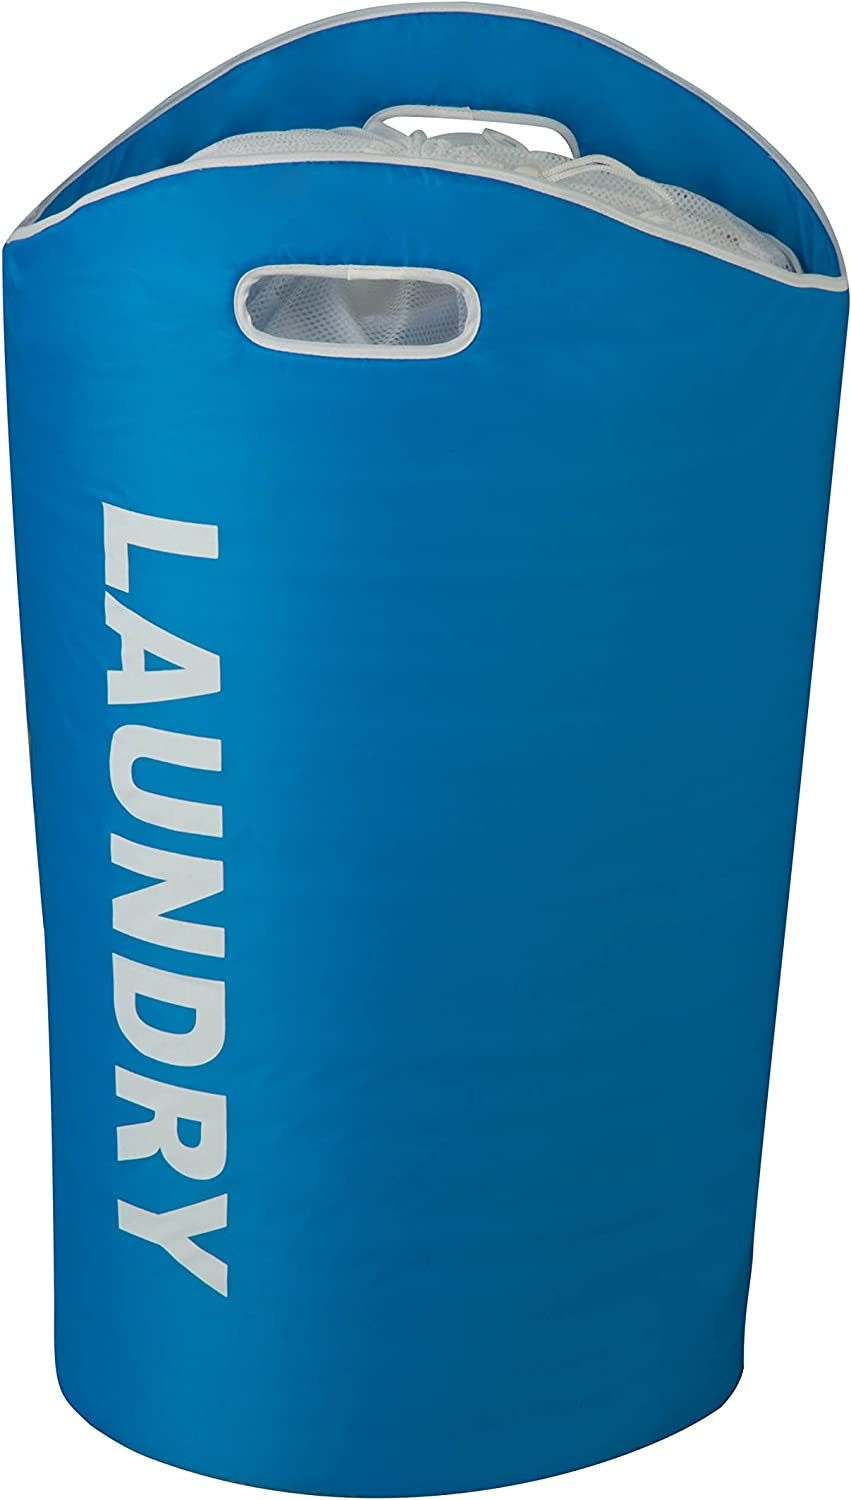 Honey-Can-Do HMP-03544 Laundry Tote, 23 L x 14 W x 26.8 H, Blue